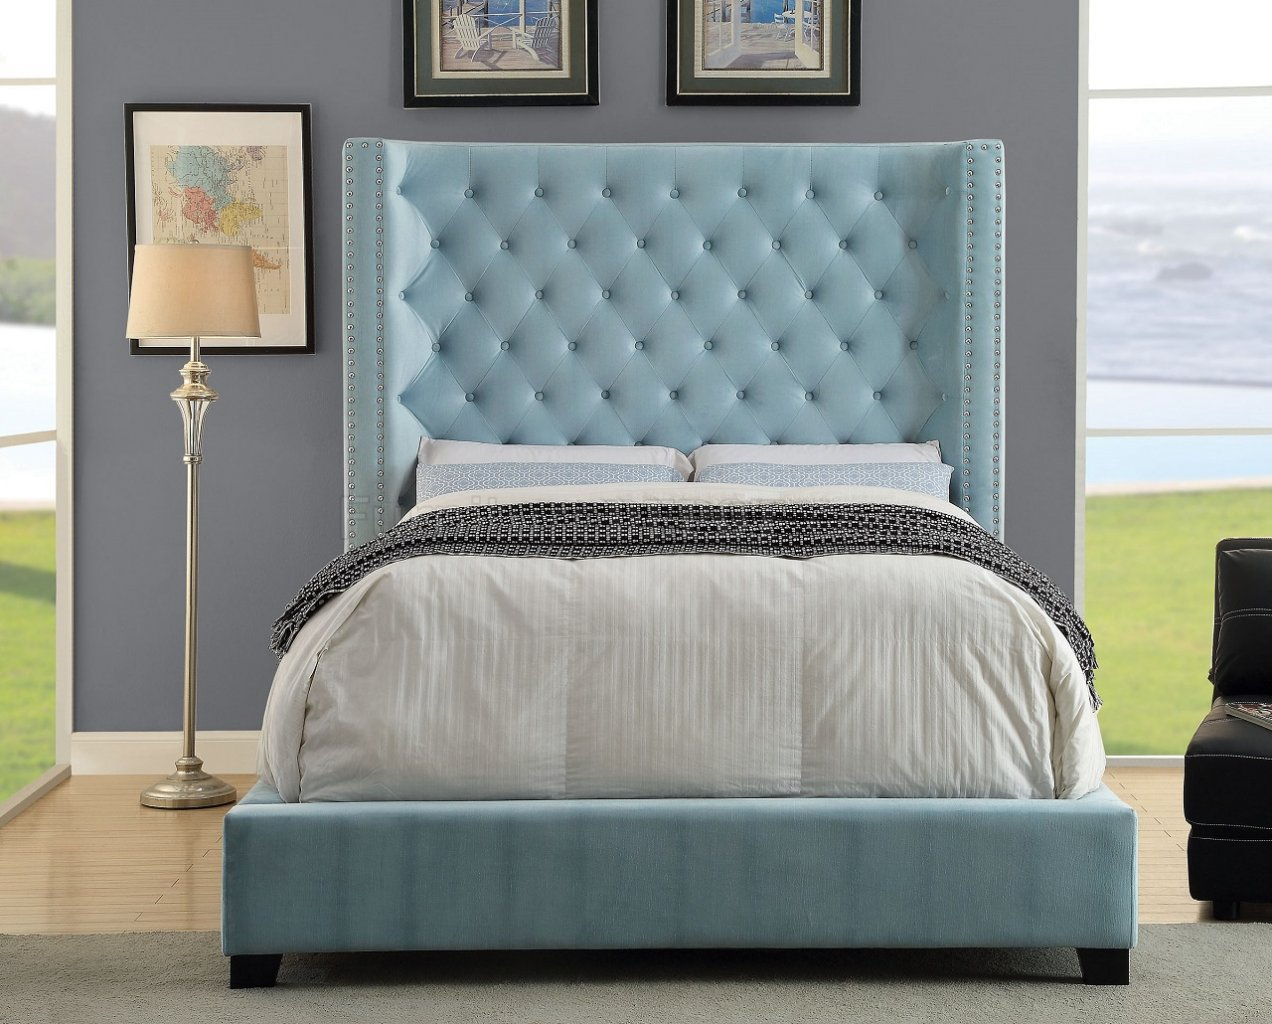 nailhead trim leather sofa set grey tufted bed mirabelle cm7679bl upholstered in blue fabric